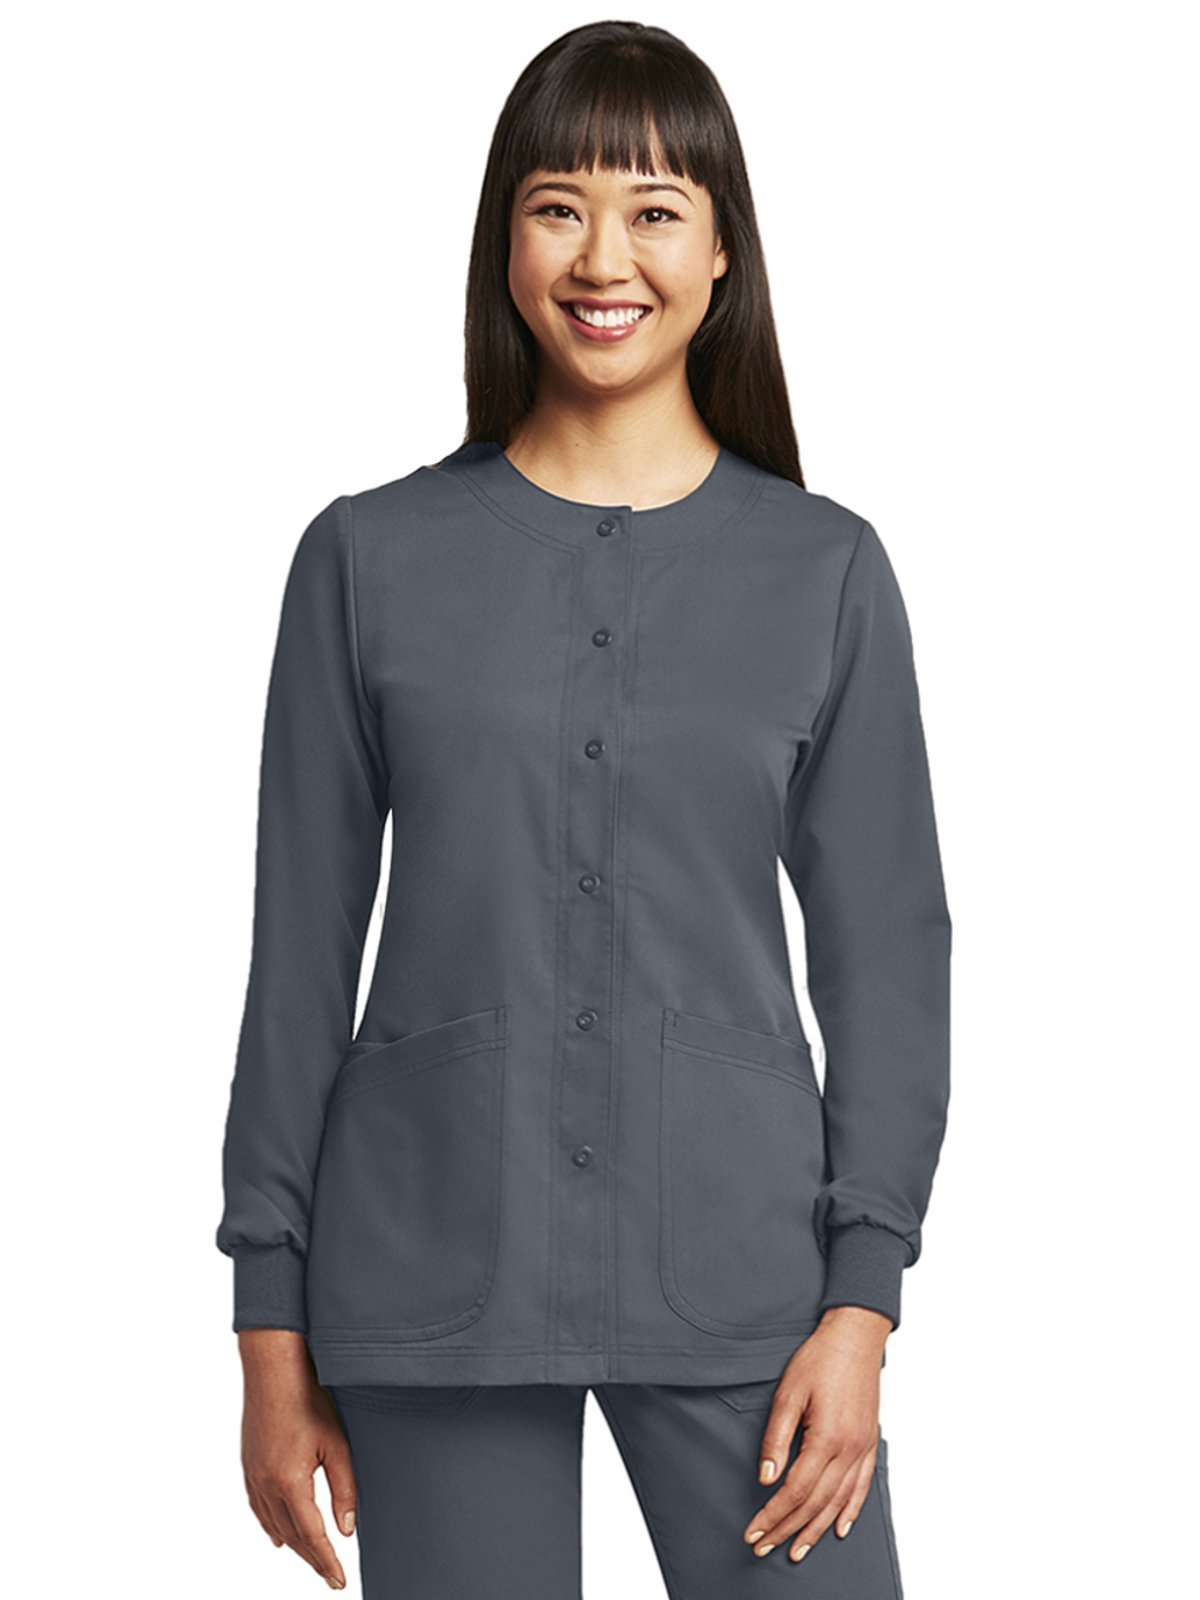 Grey's Anatomy 4450 Warm-up Jacket Granite S